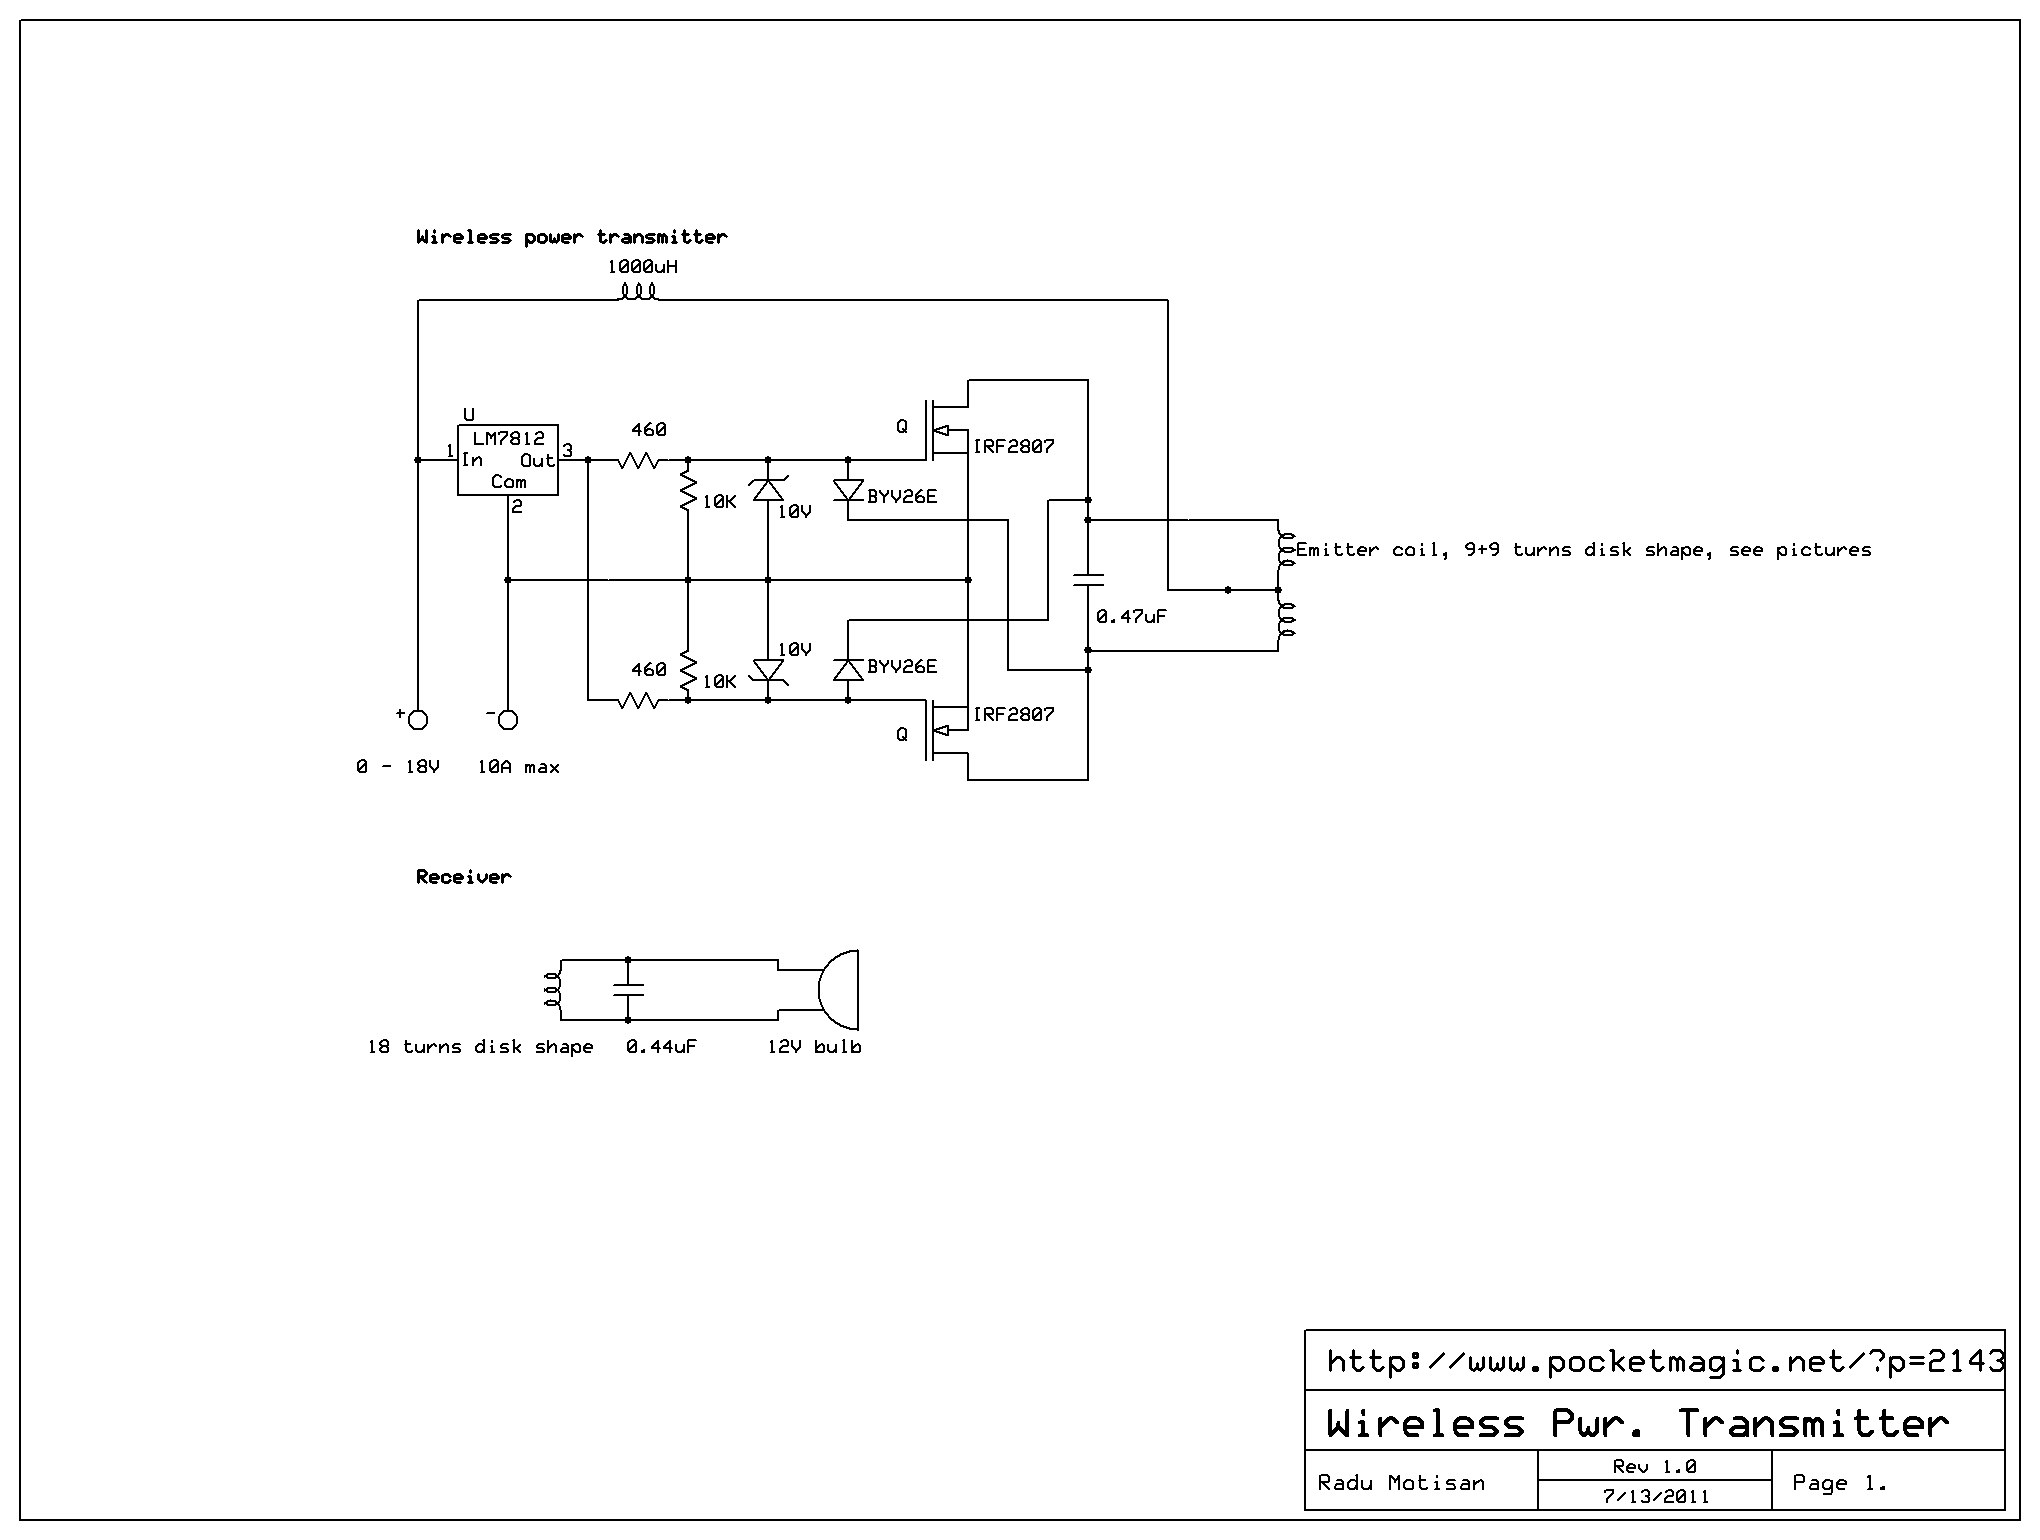 Wireless Power Transmitter - schematic